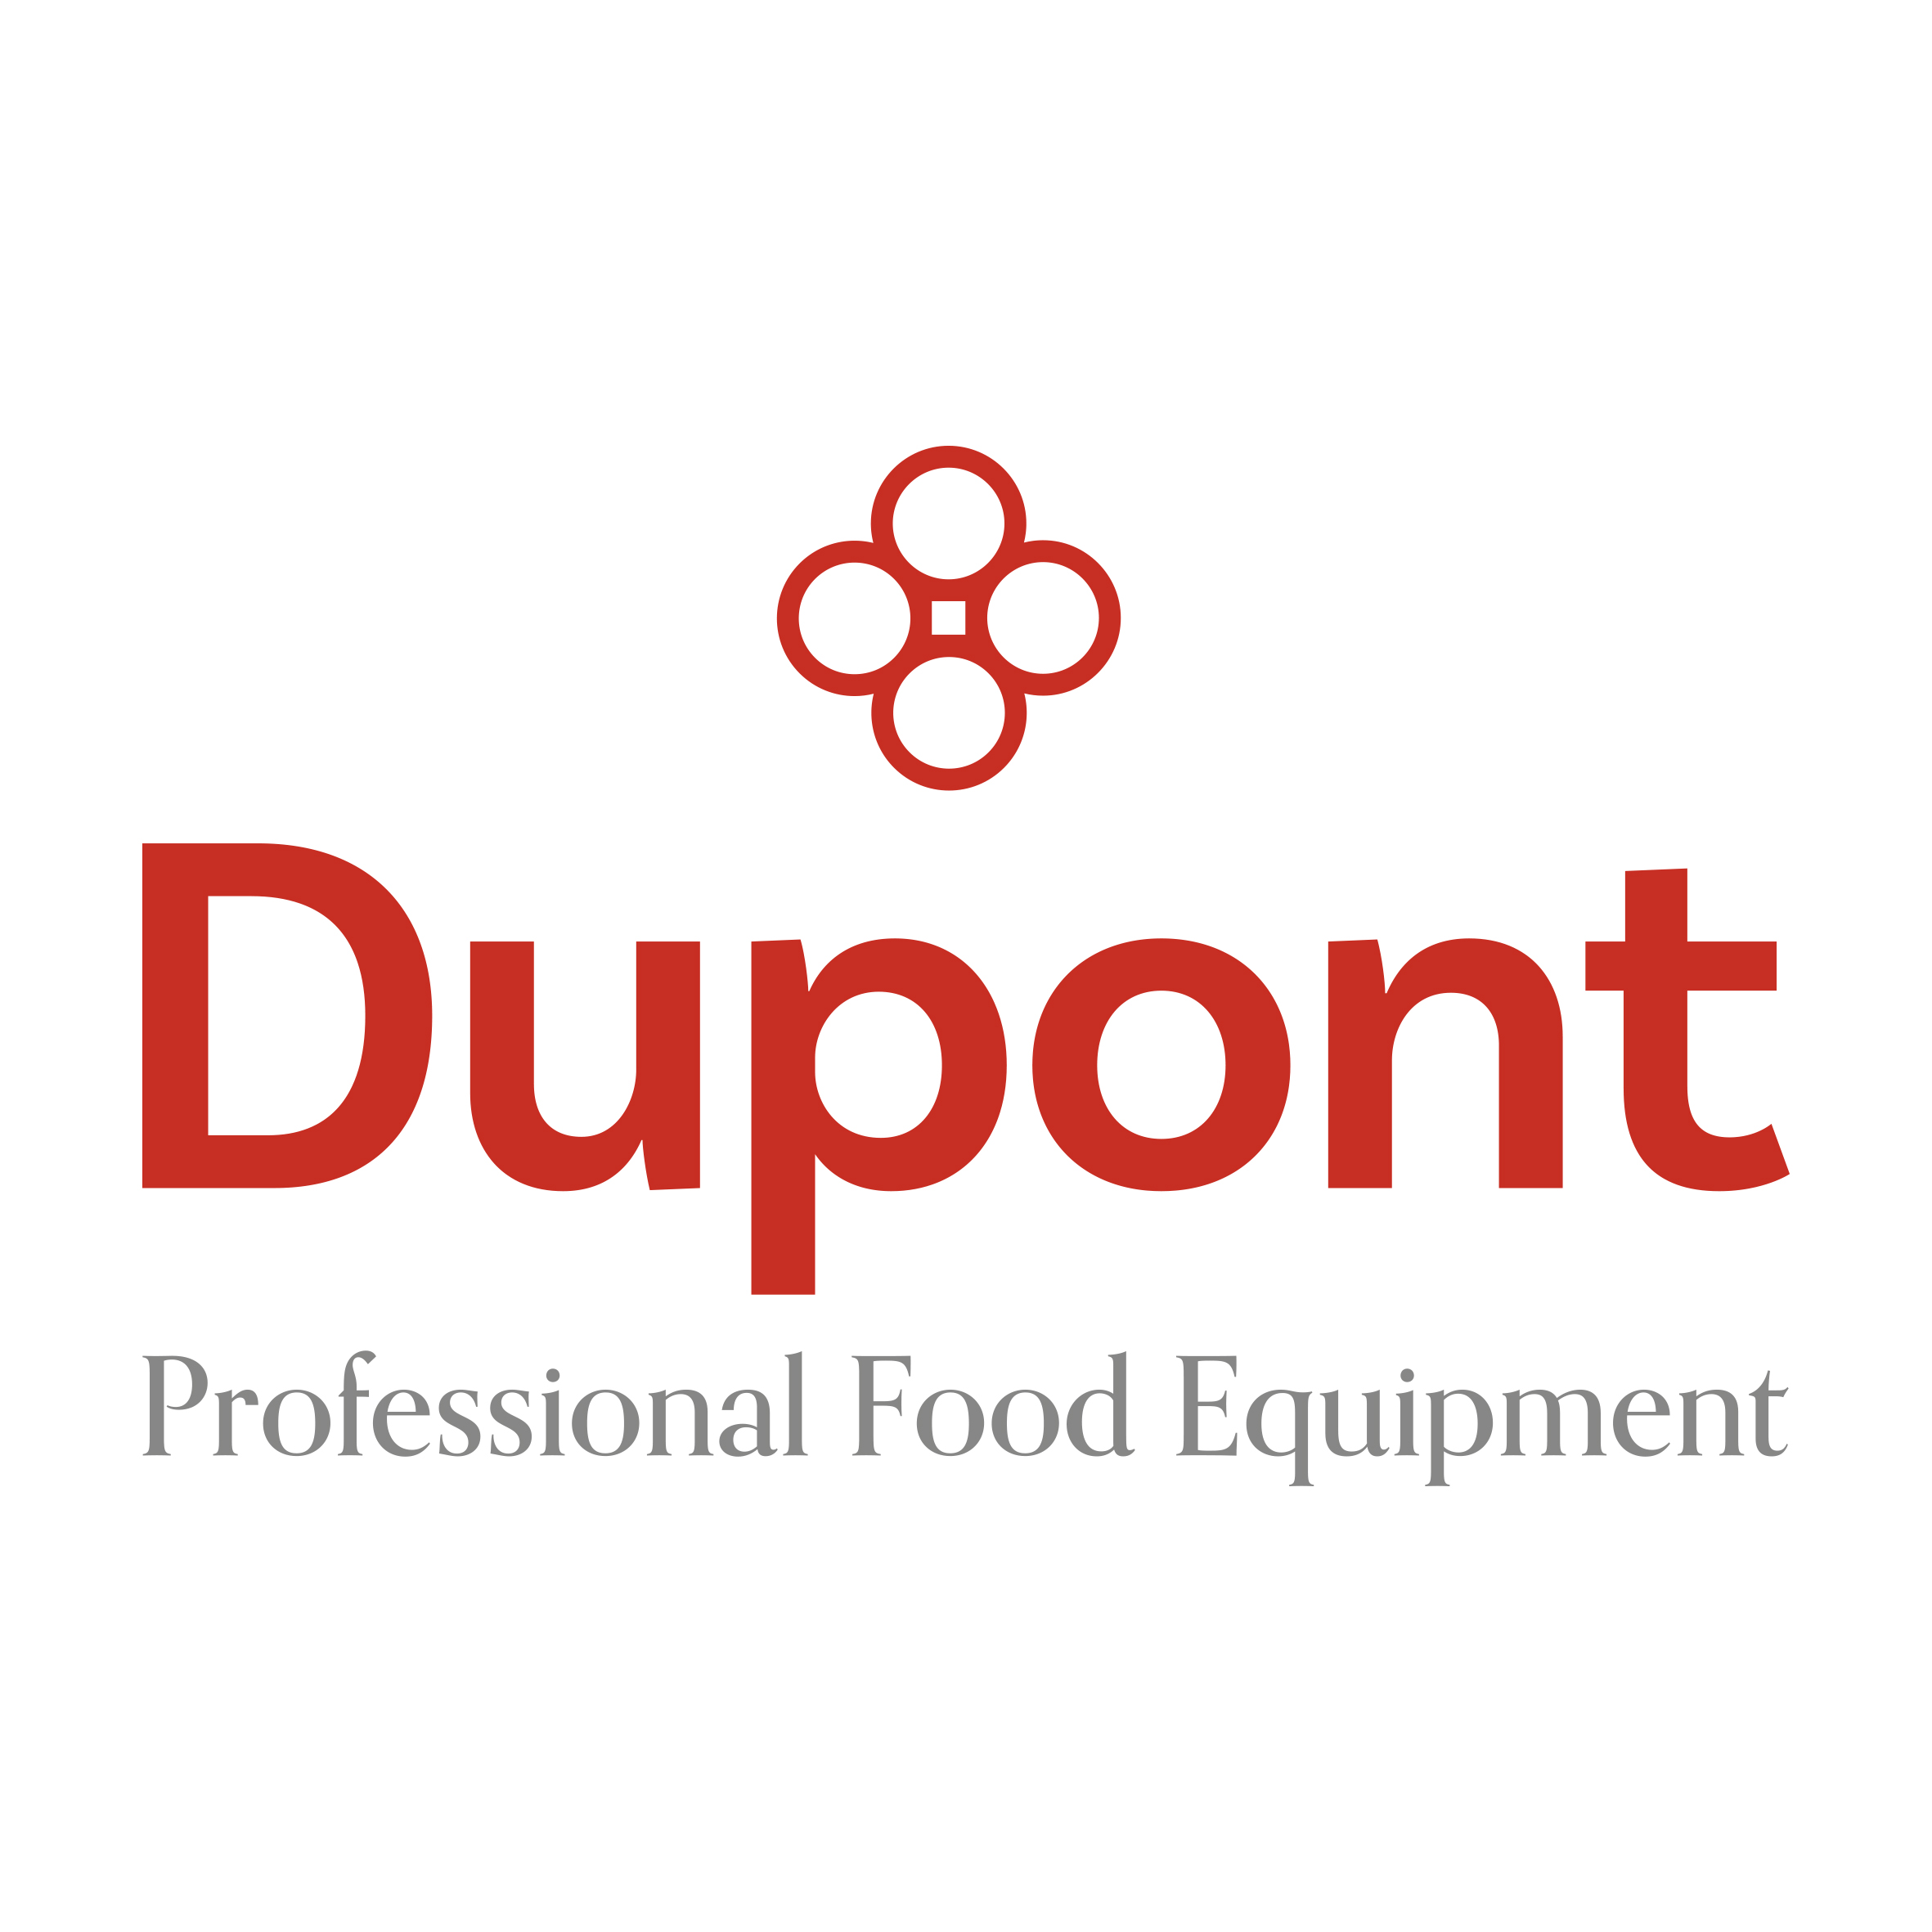 Nieuw logo Dupont Professional Food Equipment